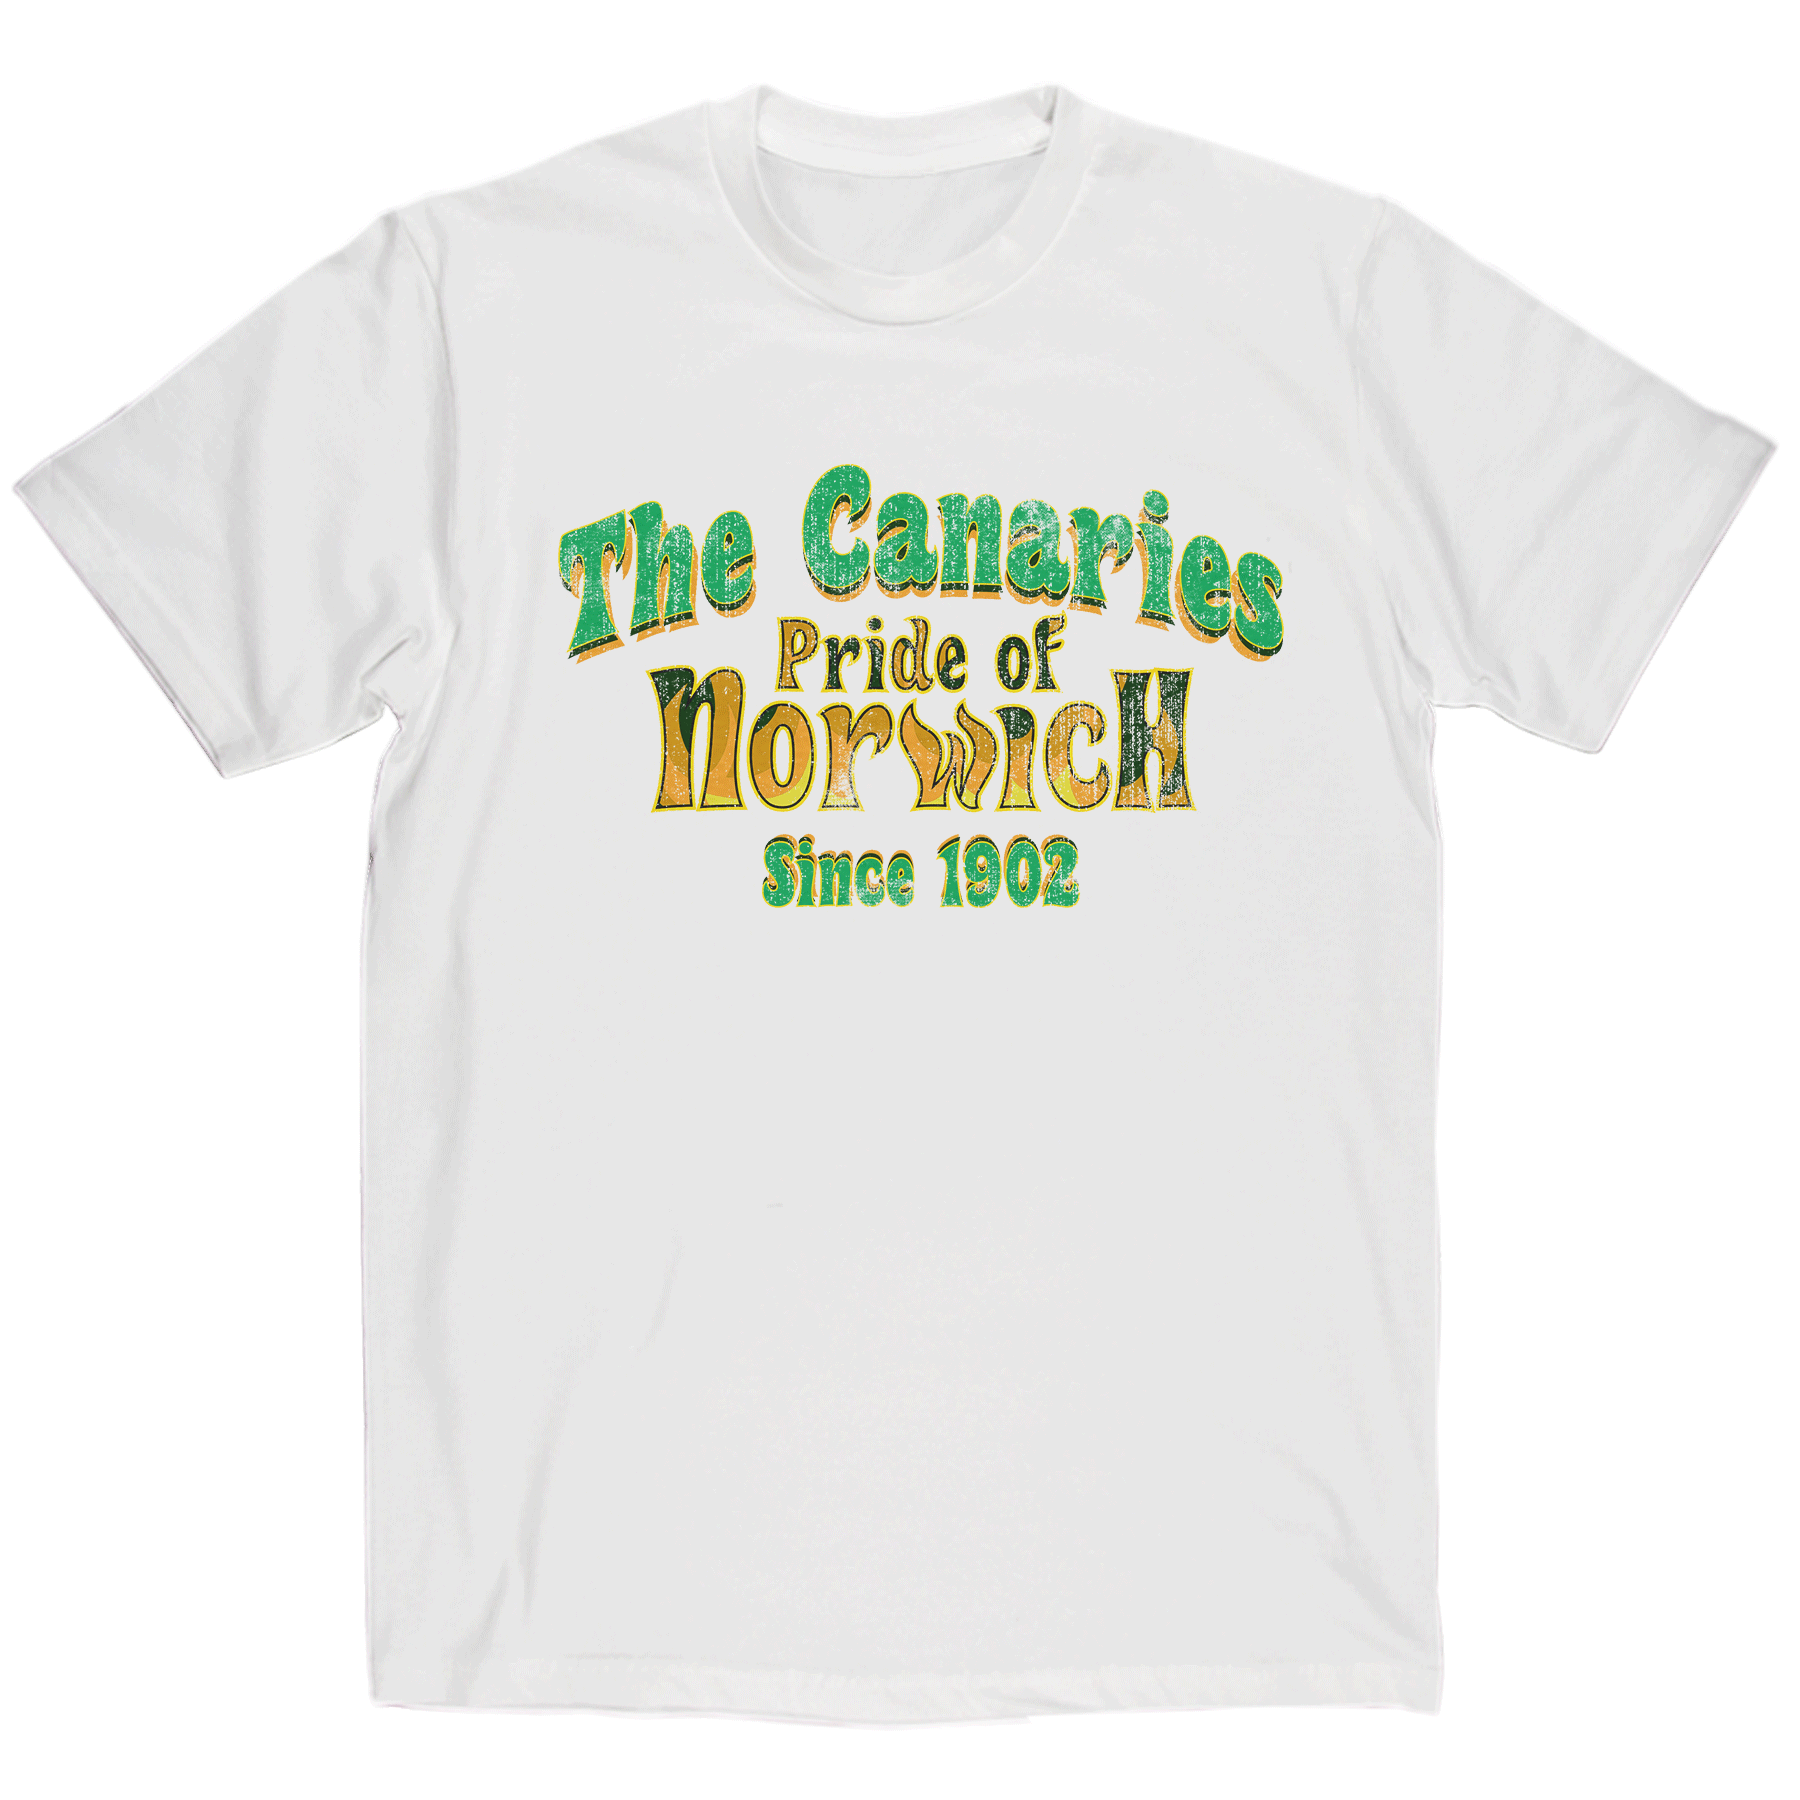 Club Nicknames The Canaries T-Shirt